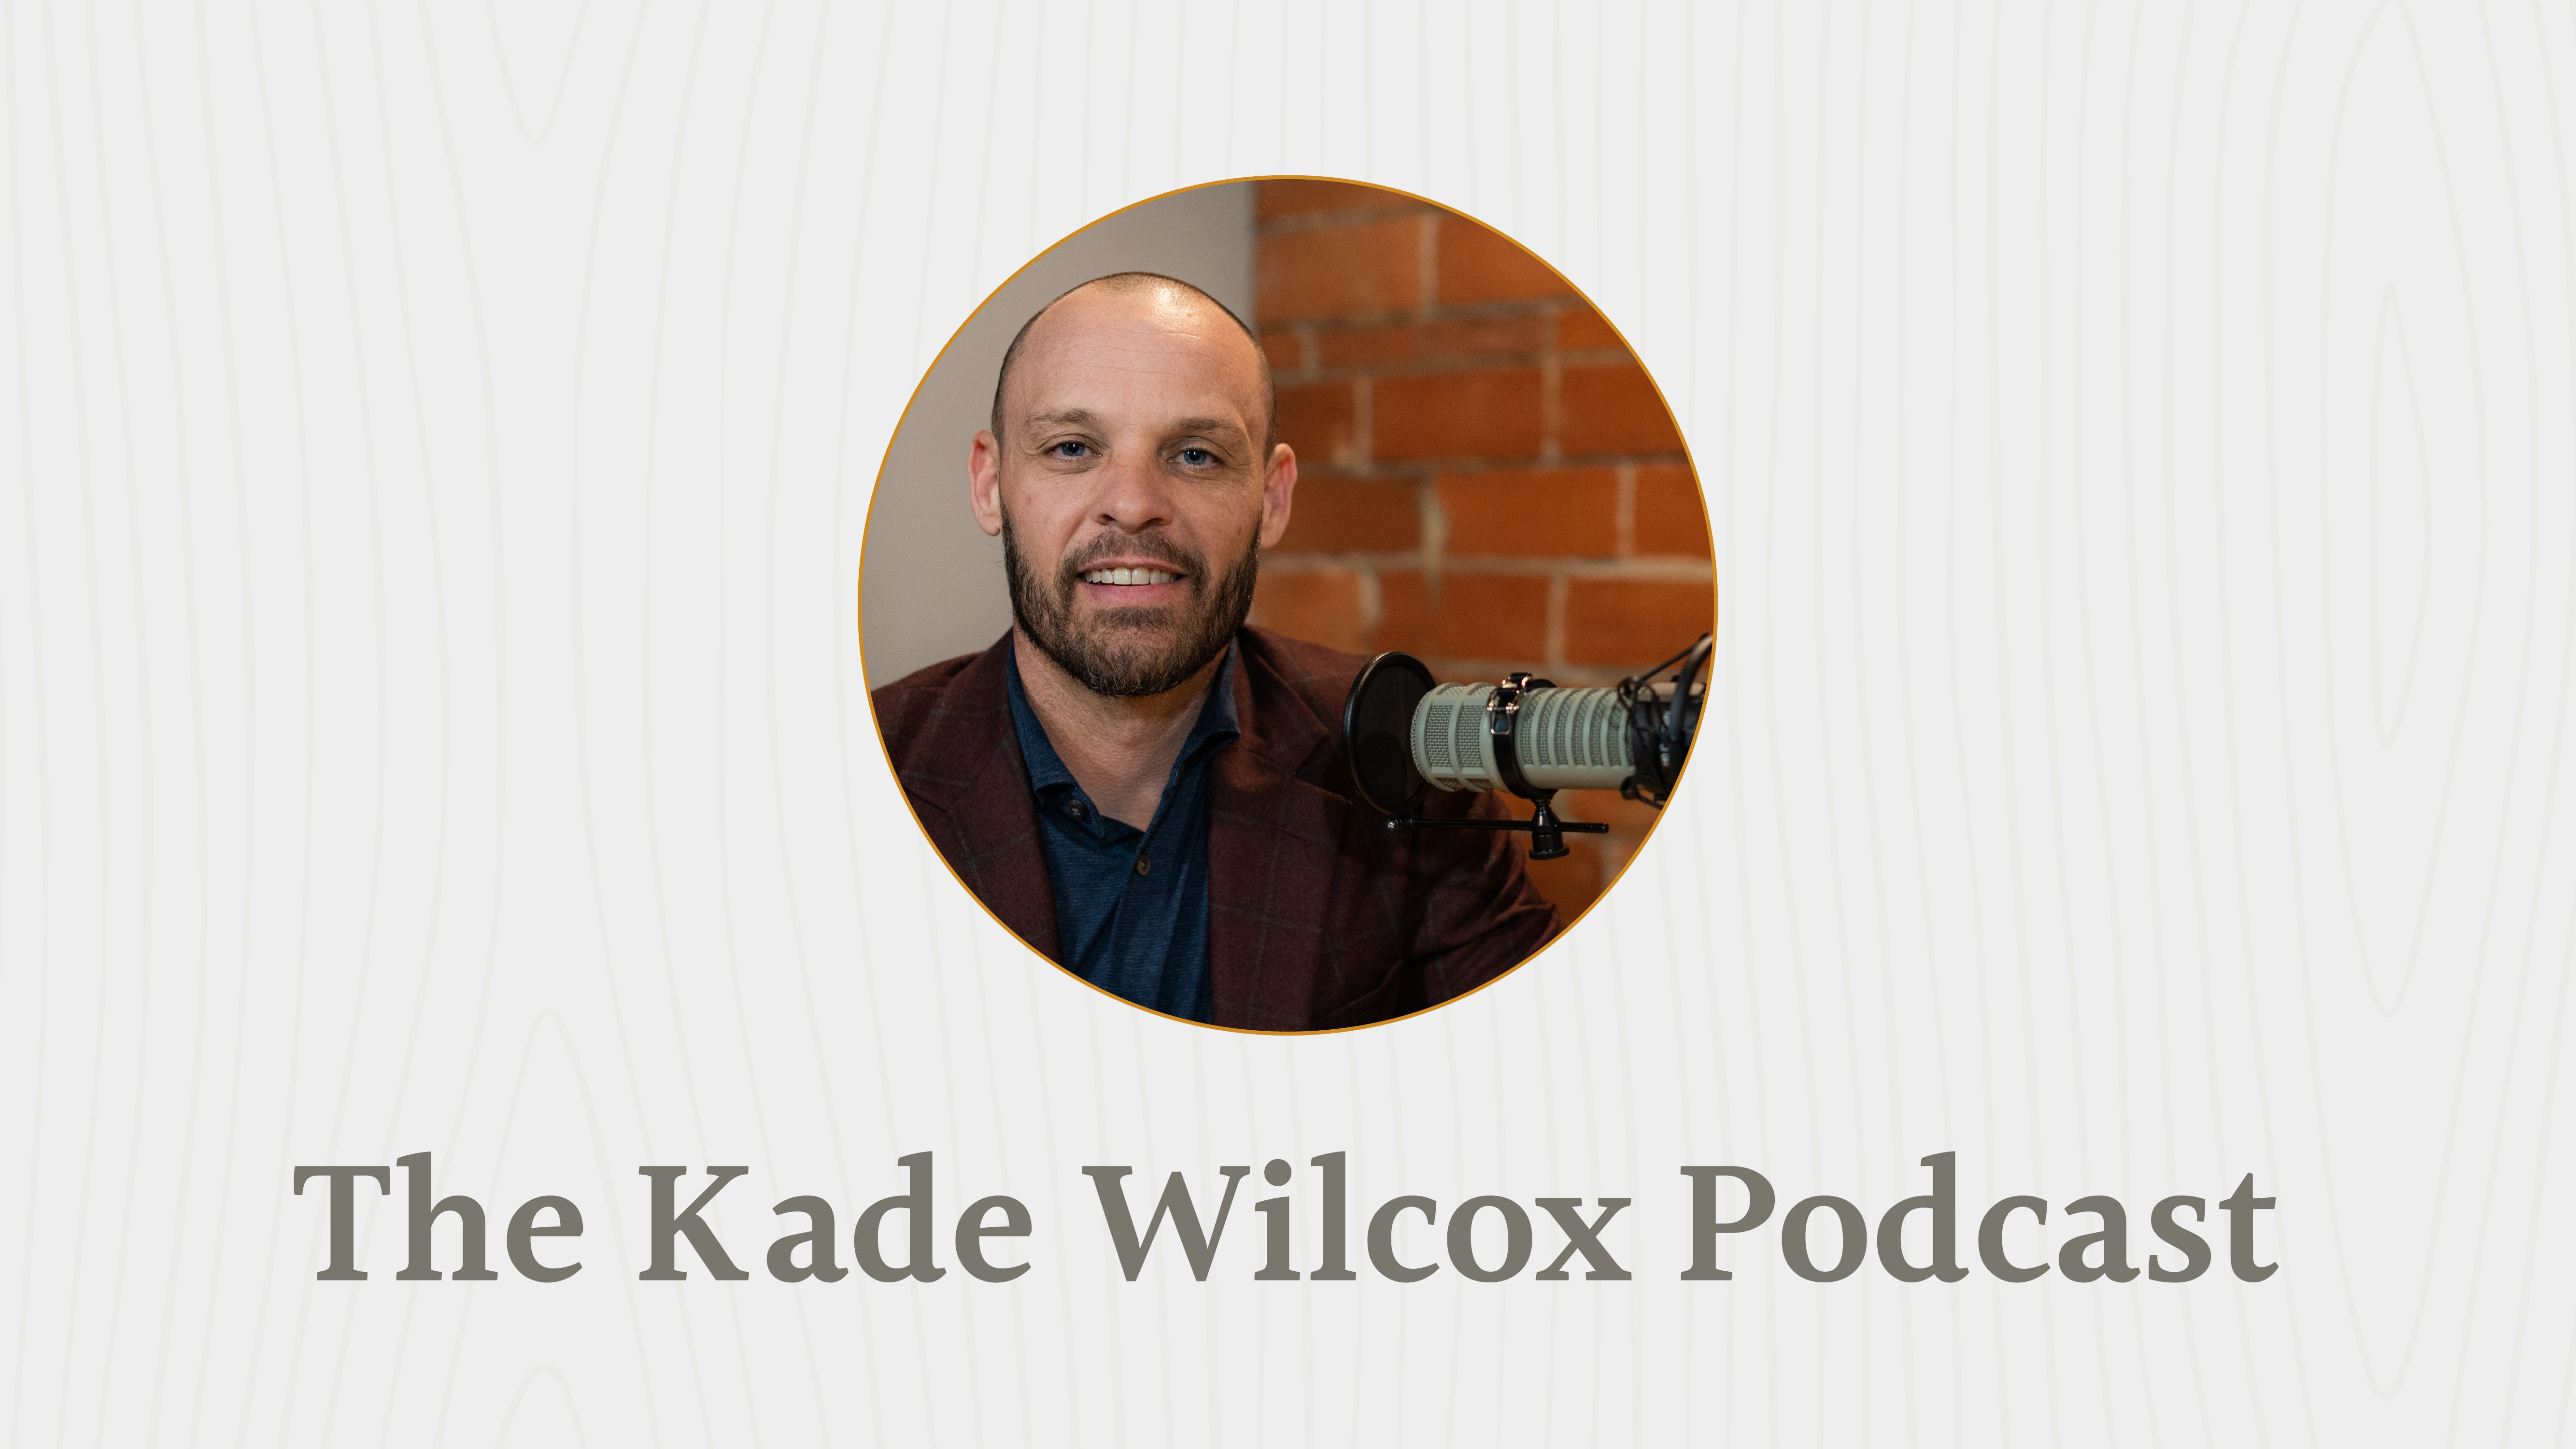 The Kade Wilcox Podcast: 5 Common Threads in Small Business image